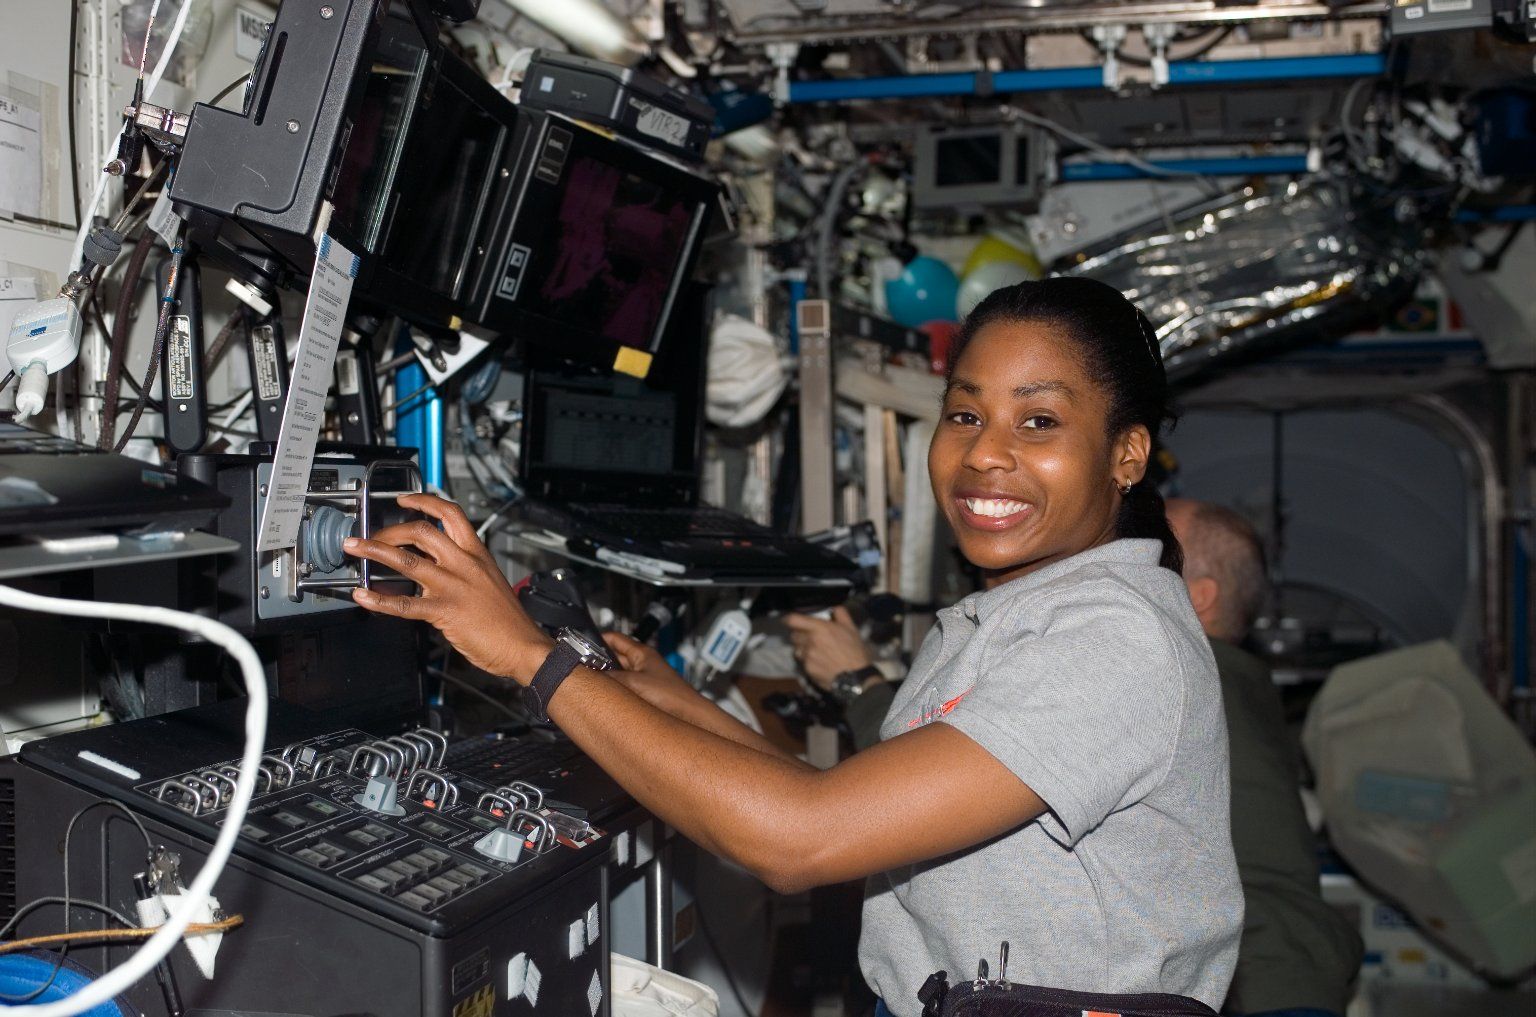 Wilson works at the SSRMS during STS-121 / Expedition 13 joint operations